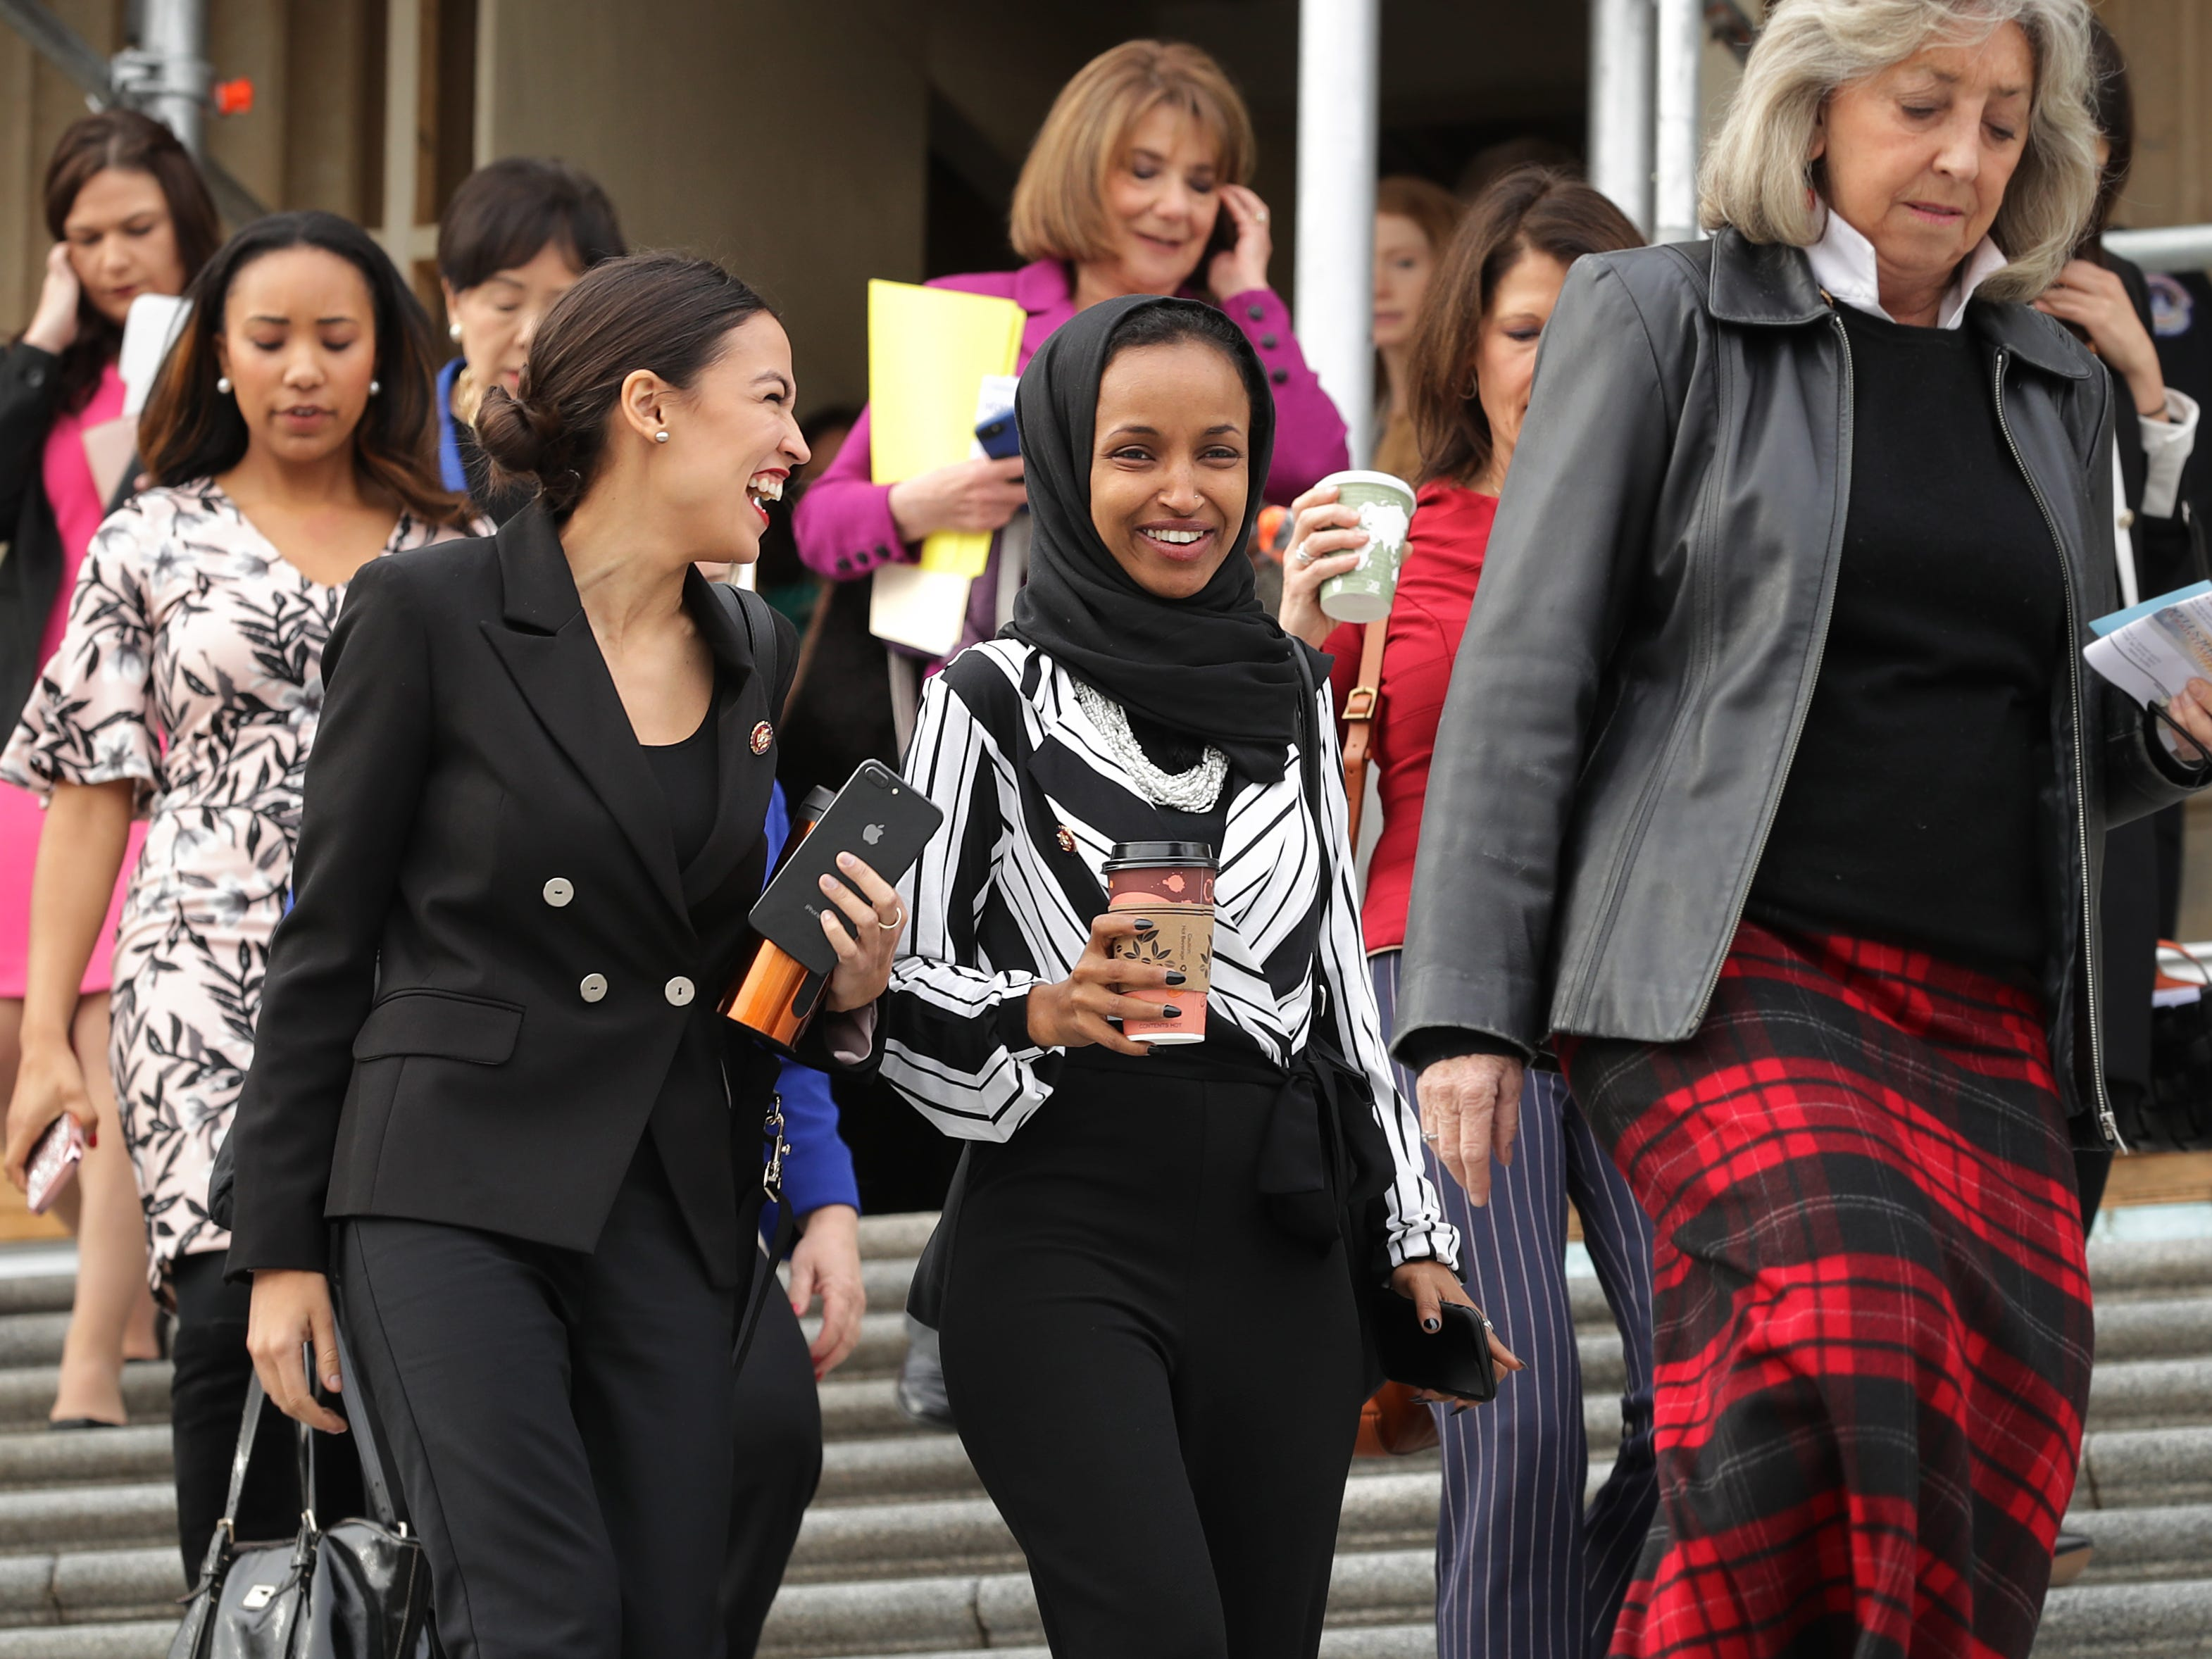 WASHINGTON, DC - JANUARY 04: Rep. Alexandria Ocasio-Cortez (D-NY) (L) and Rep. Ilhan Omar (D-MN) (C) join their fellow House Democratic women for a portrait in front of the U.S. Capitol January 04, 2019 in Washington, DC. The 116th Congress has the biggest number of female members ever while the number of Democratic women in the House has grown from 16 to 89 since 1989. (Photo by Chip Somodevilla/Getty Images) ***BESTPIX*** ORG XMIT: 775277340 ORIG FILE ID: 1089771236